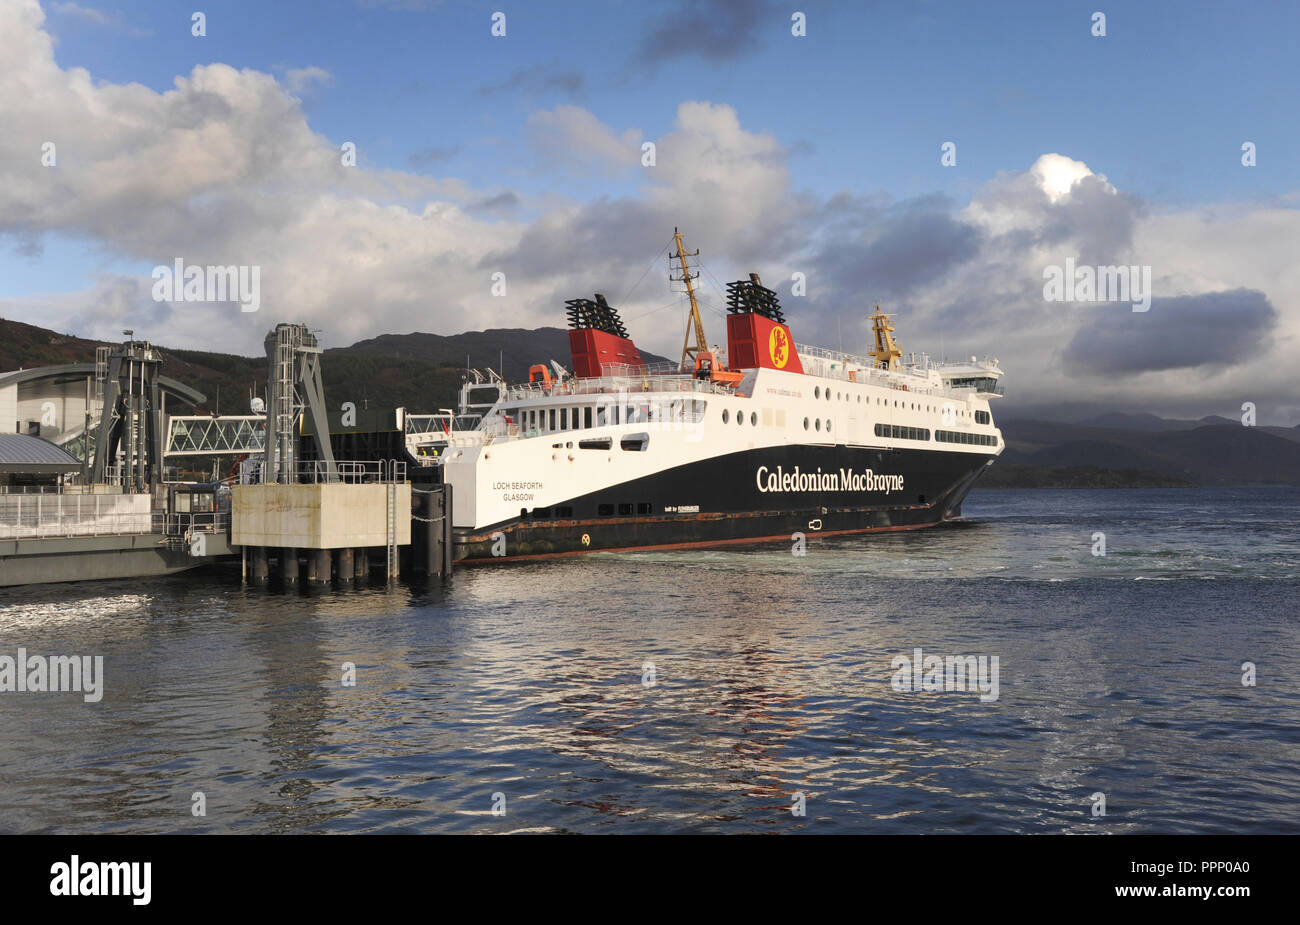 THE LOCH SEAFORTH CALEDONIAN MACBRAYNE FERRY DOCKING AT ULLAPOOL SCOTLAND RE FERRIES ISLANDS TOURISM TOURISTS SCOTTISH ISLAND HOPPING HEBRIDES UK - Stock Image